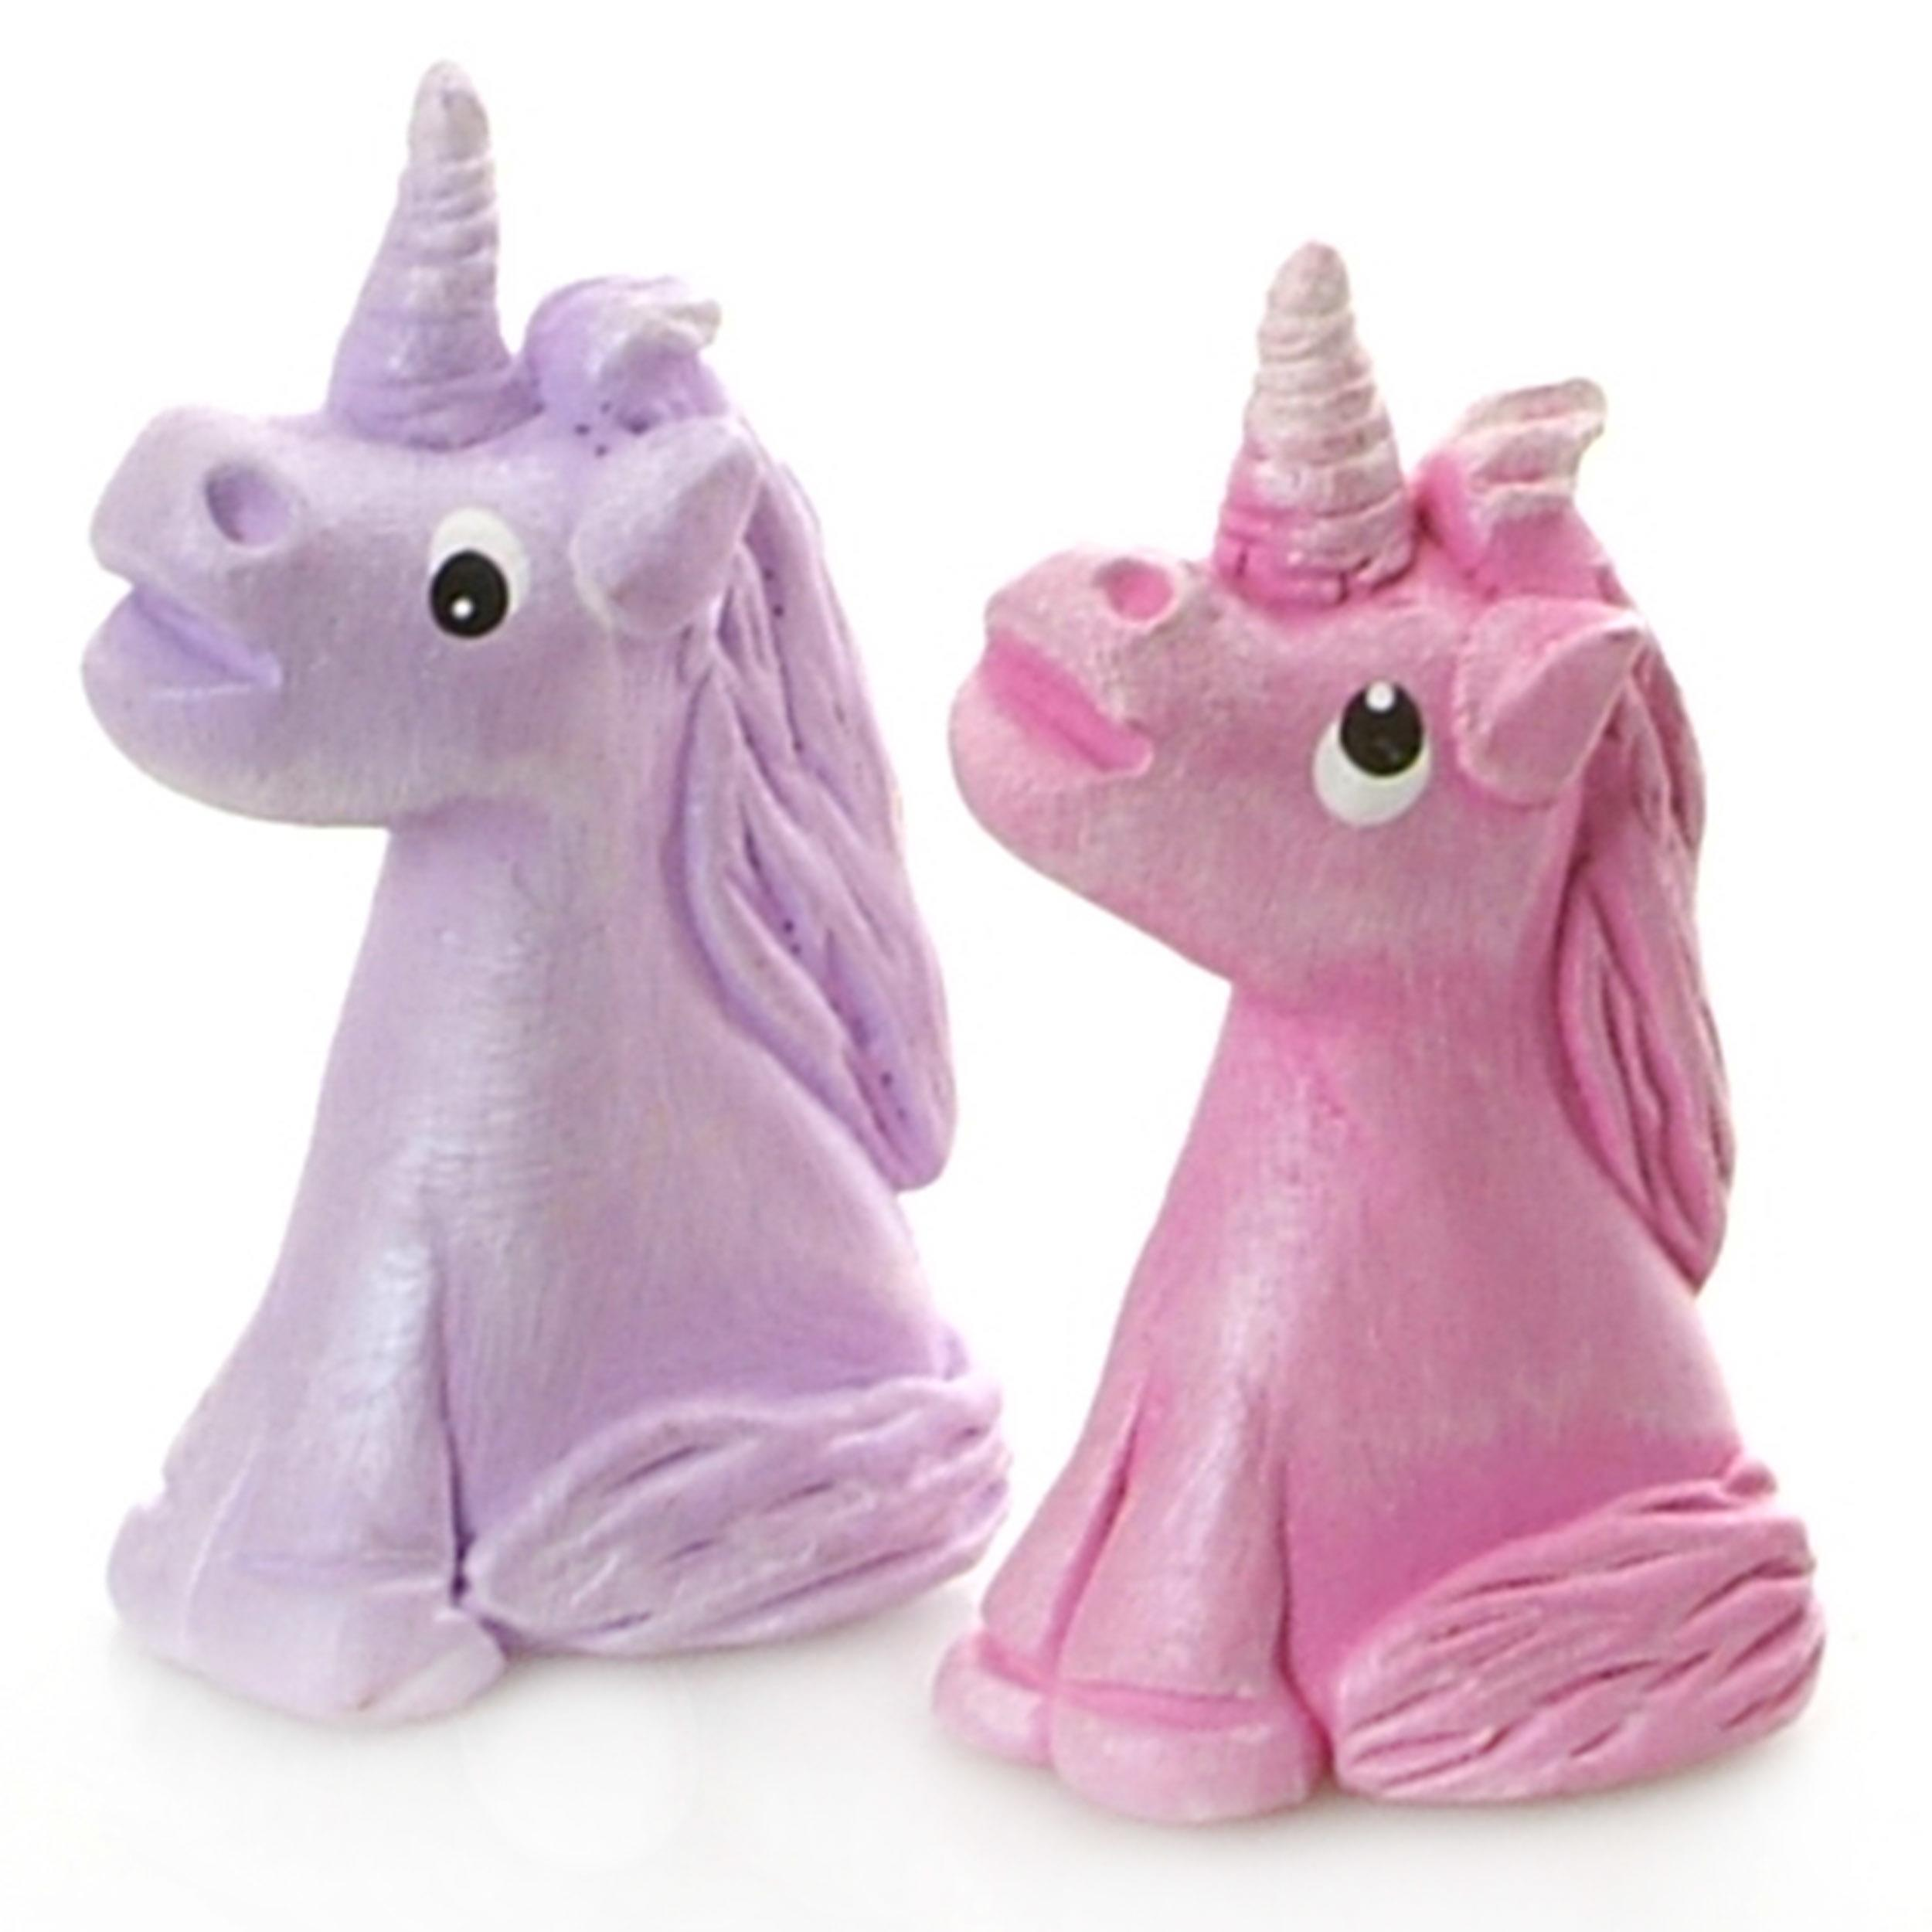 Pet in a Box | Ceramic Animal Gift for Kids | Unicorn